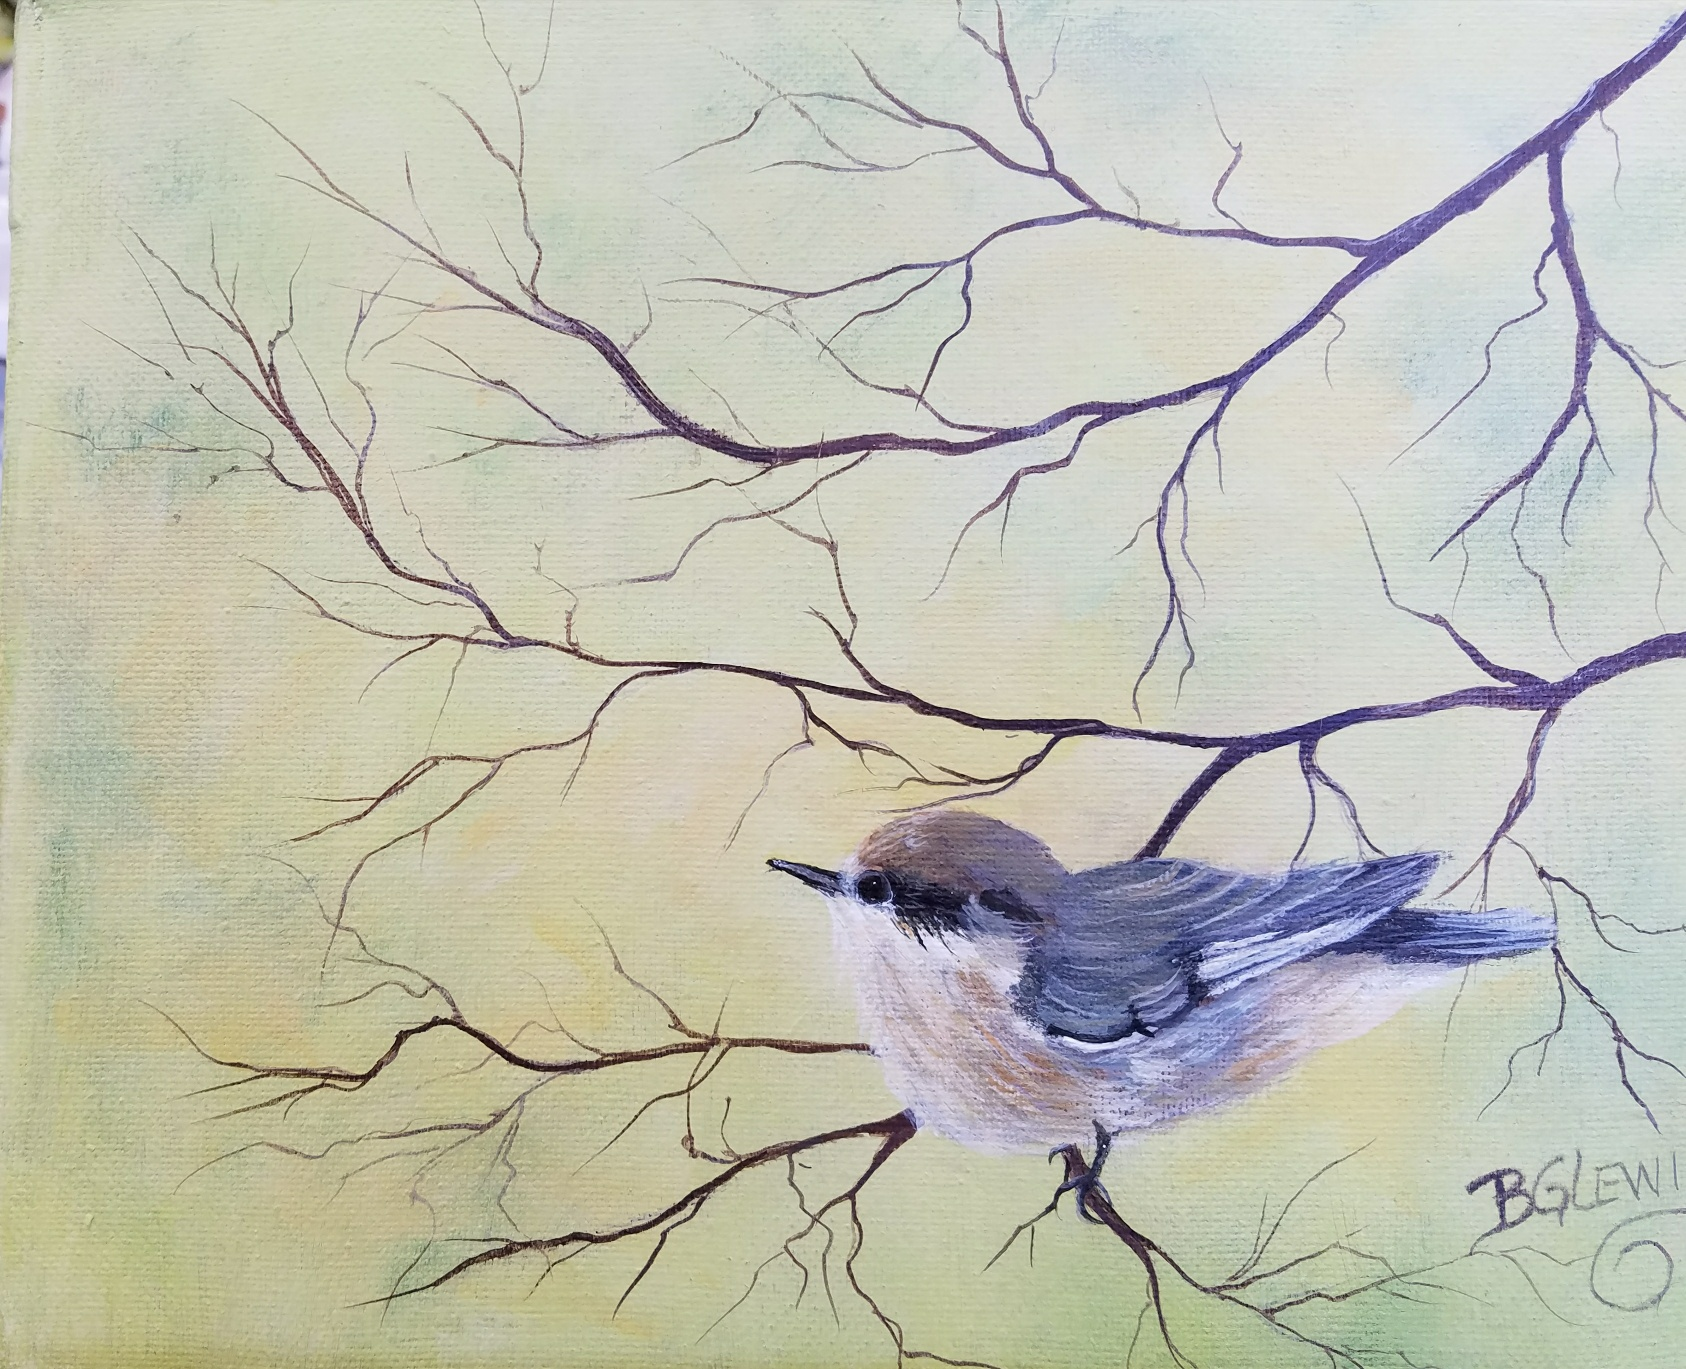 """""""Morning Melody"""" by BG Lewis, acrylic, 11x14in, $175"""